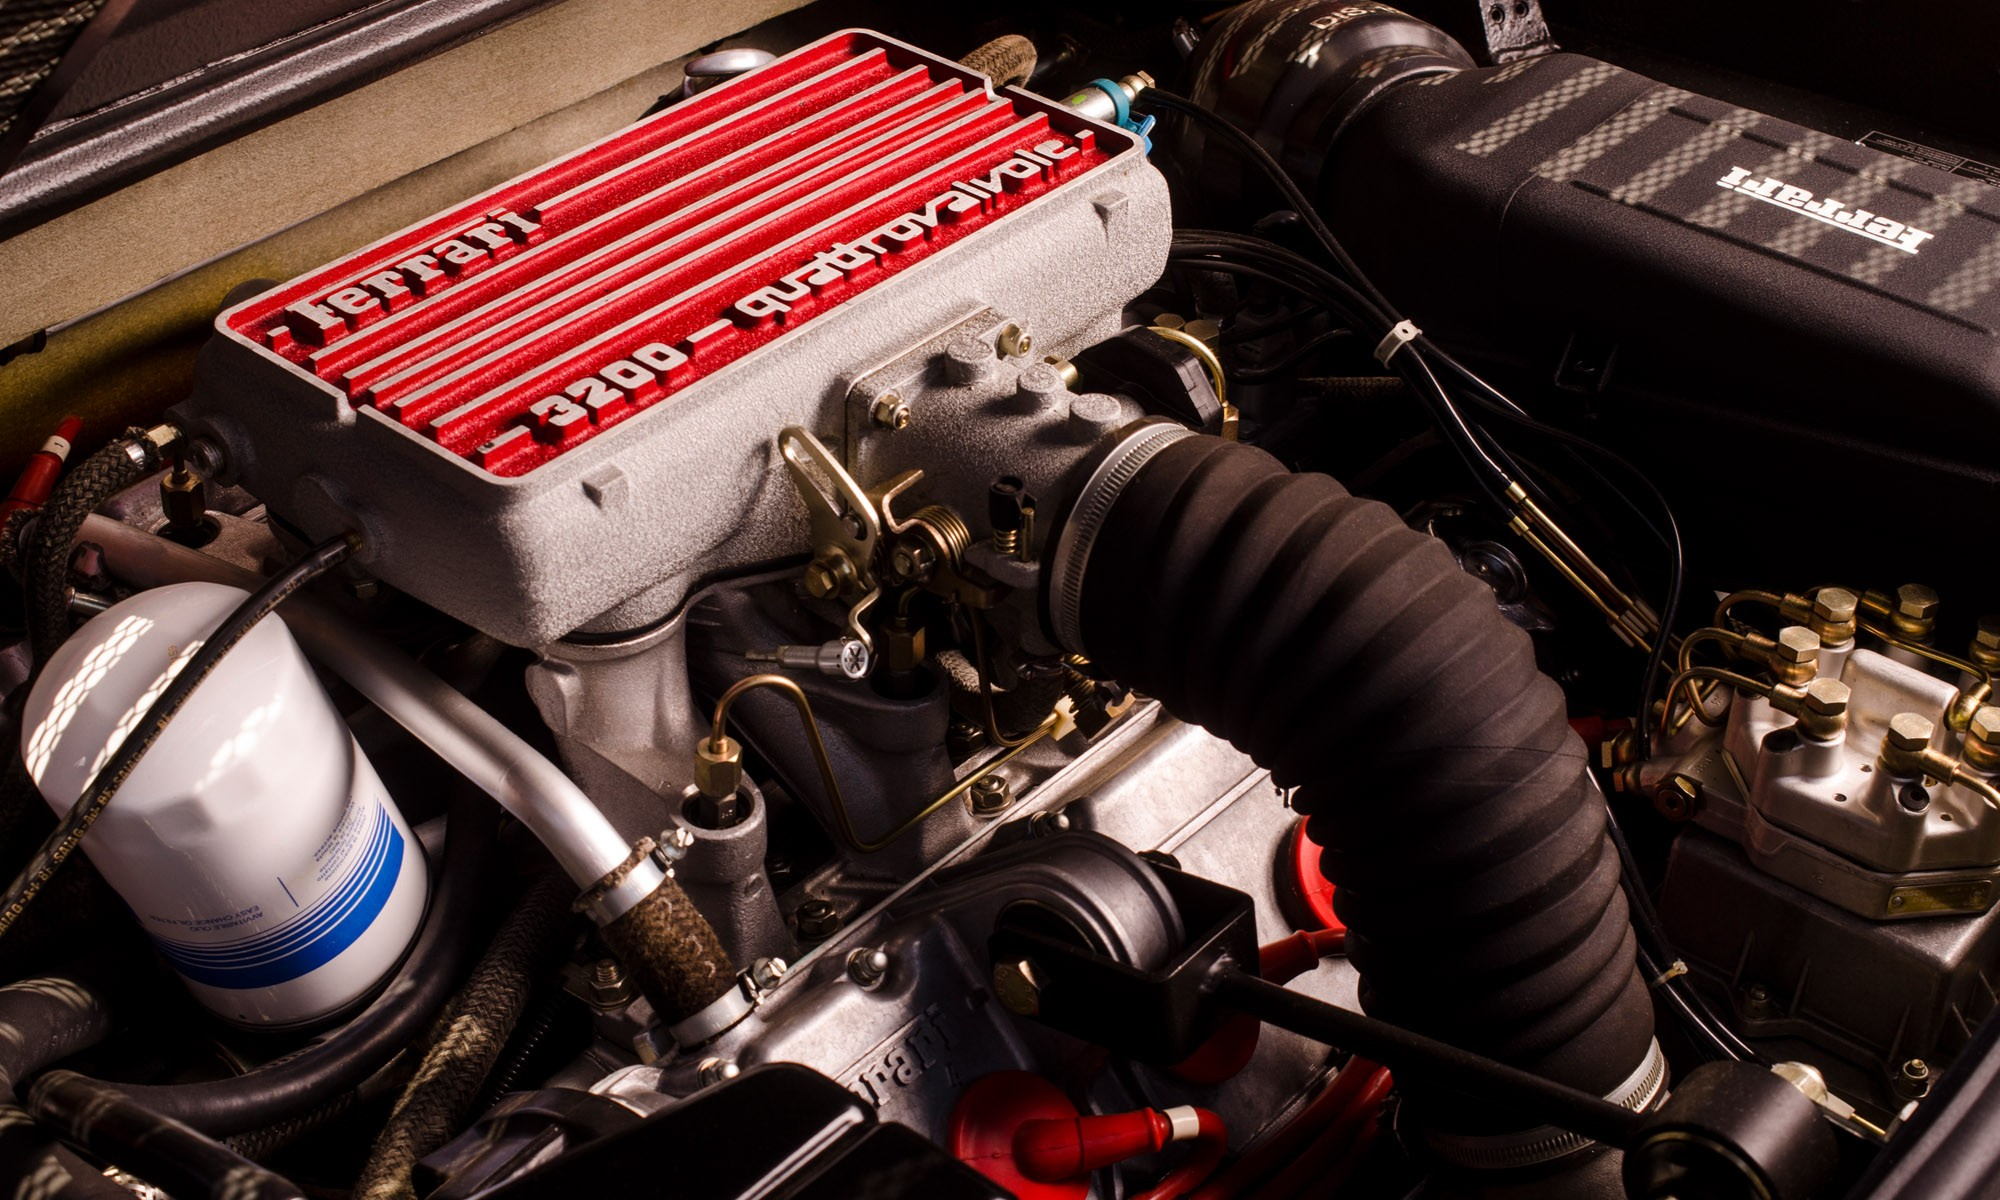 Ferrari 328 GTS engine